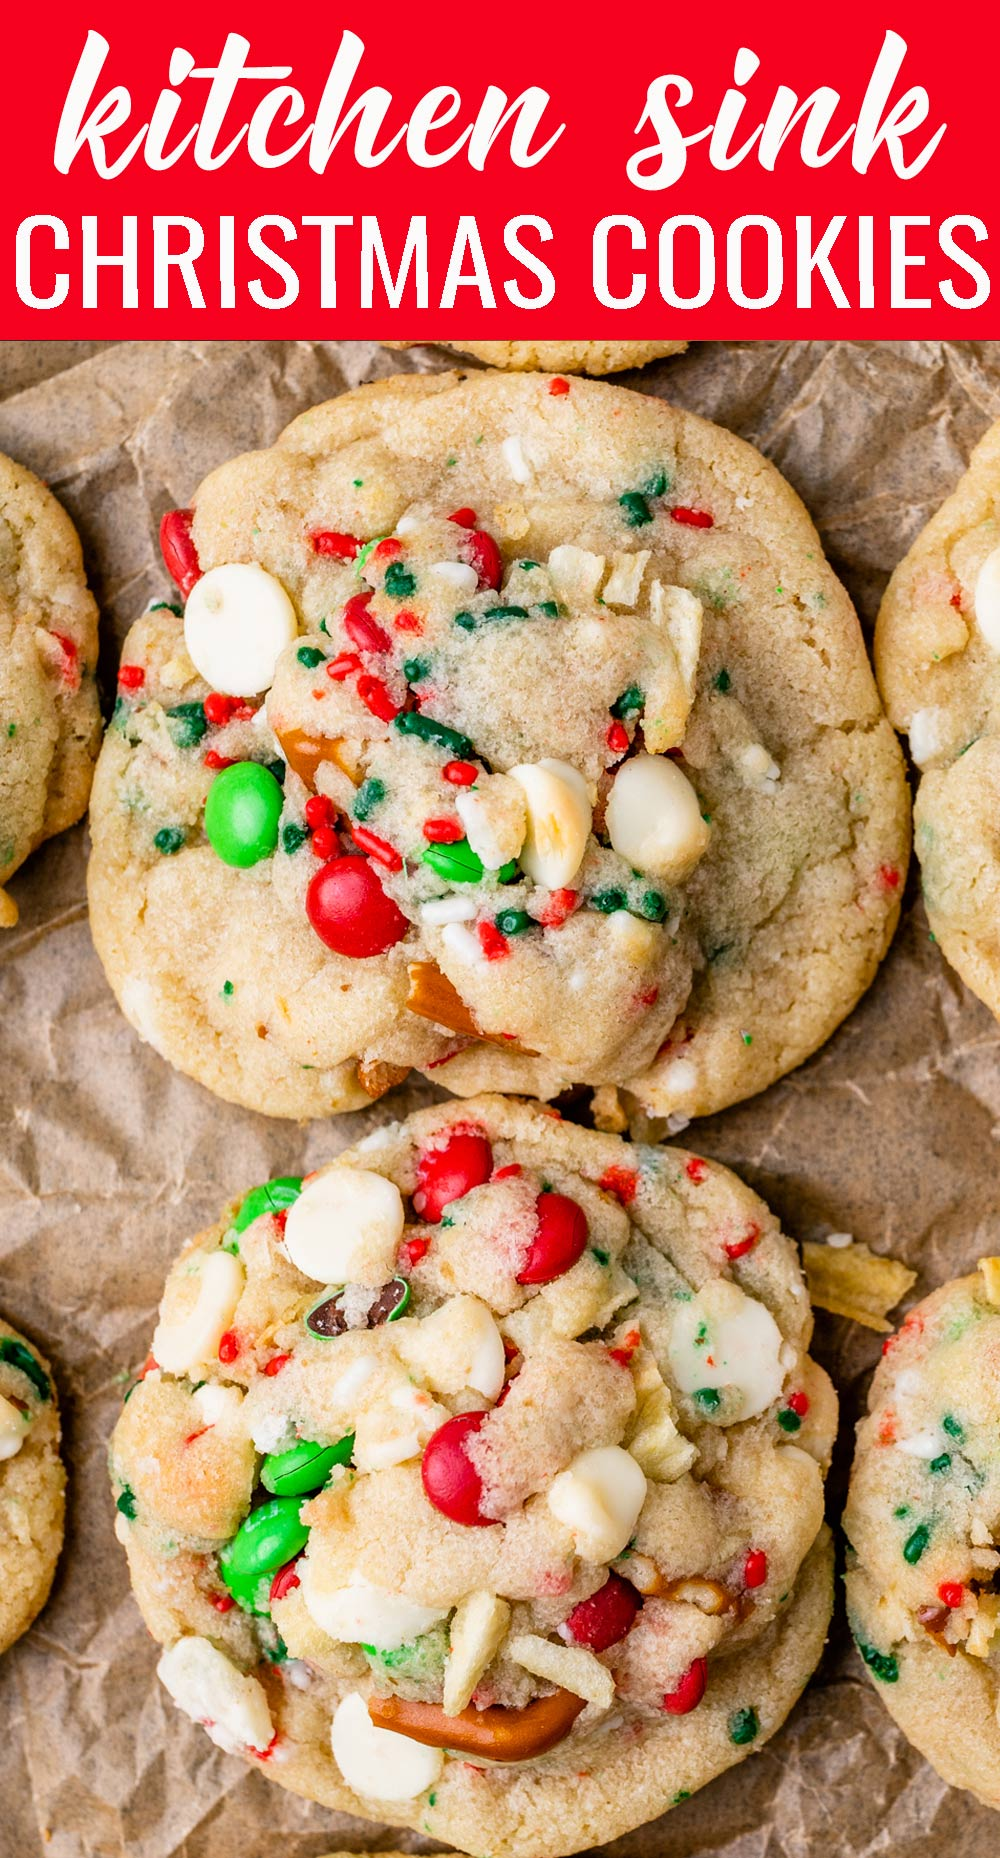 Christmas Kitchen Sink Cookies loaded with pretzels, chips, M&Ms and white chocolate will brighten your Christmas cookie plate! via @tastesoflizzyt